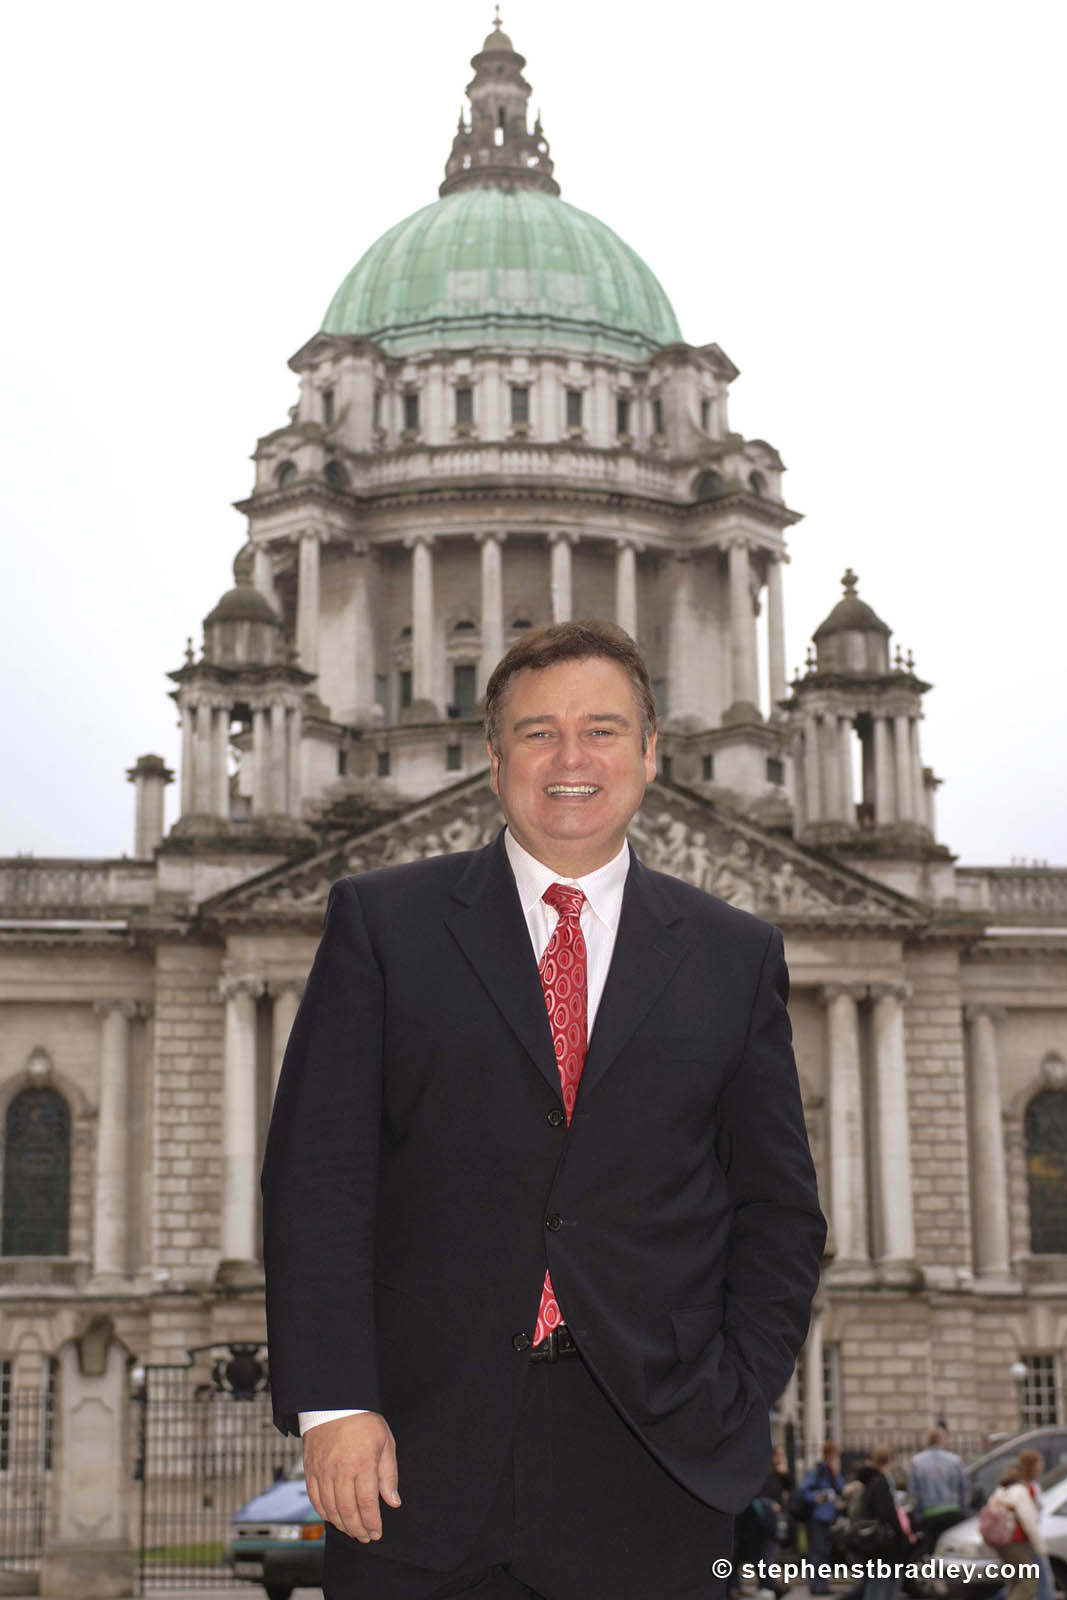 PR Photographer Dublin Ireland portfolio photo of celebrity Eamonn Holmes in front of Belfast City Hall, Northern Ireland - photo 6118 by Stephen S T Bradley PR photography and video production services Dublin, Ireland